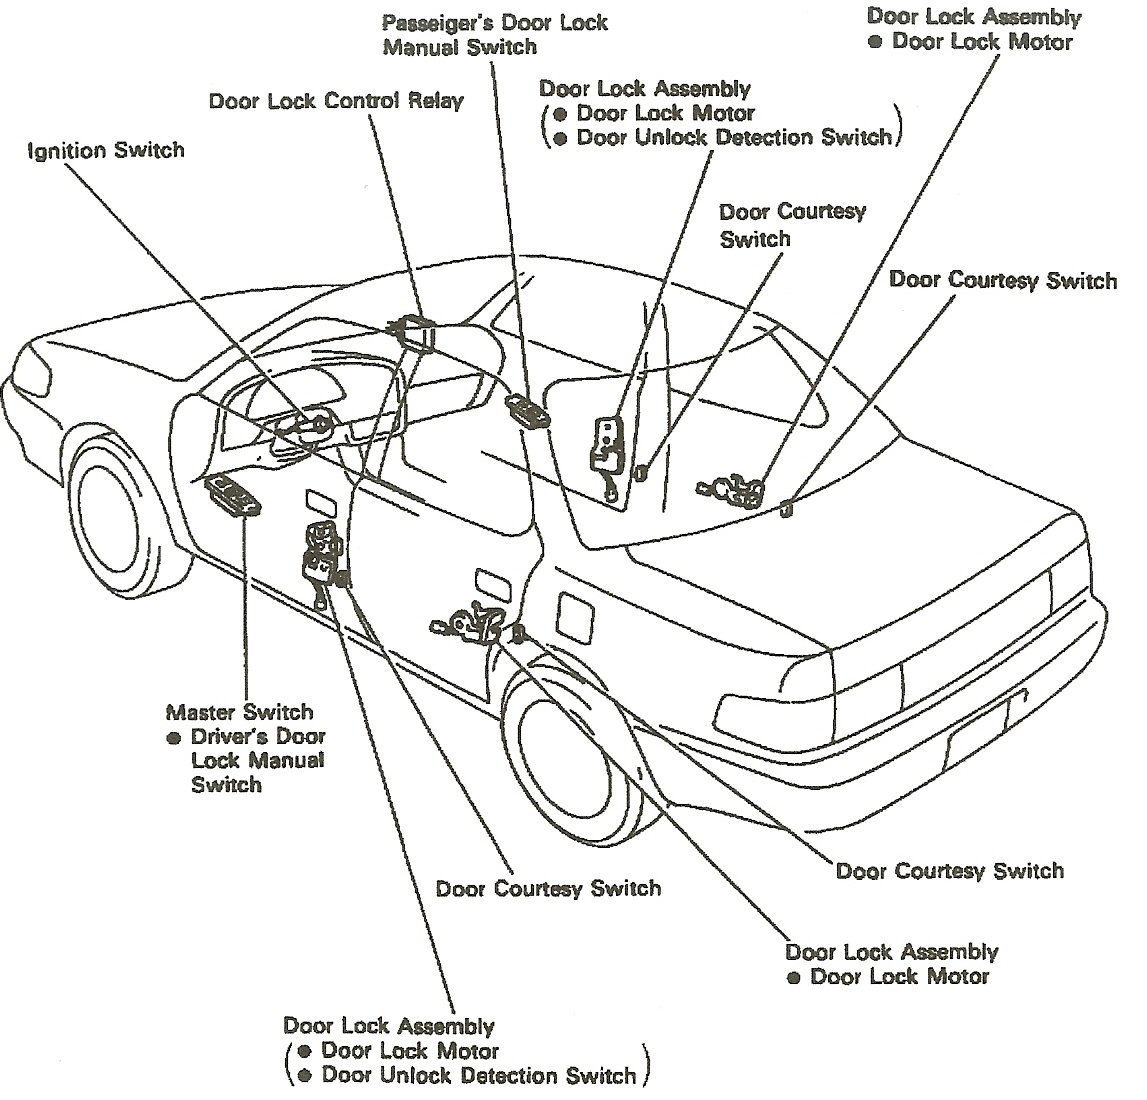 2010 Toyota Tundra Door Lock Wiring Diagram Electrical Diagrams Wire For 08 Relay Diy Enthusiasts U2022 Ford Mustang